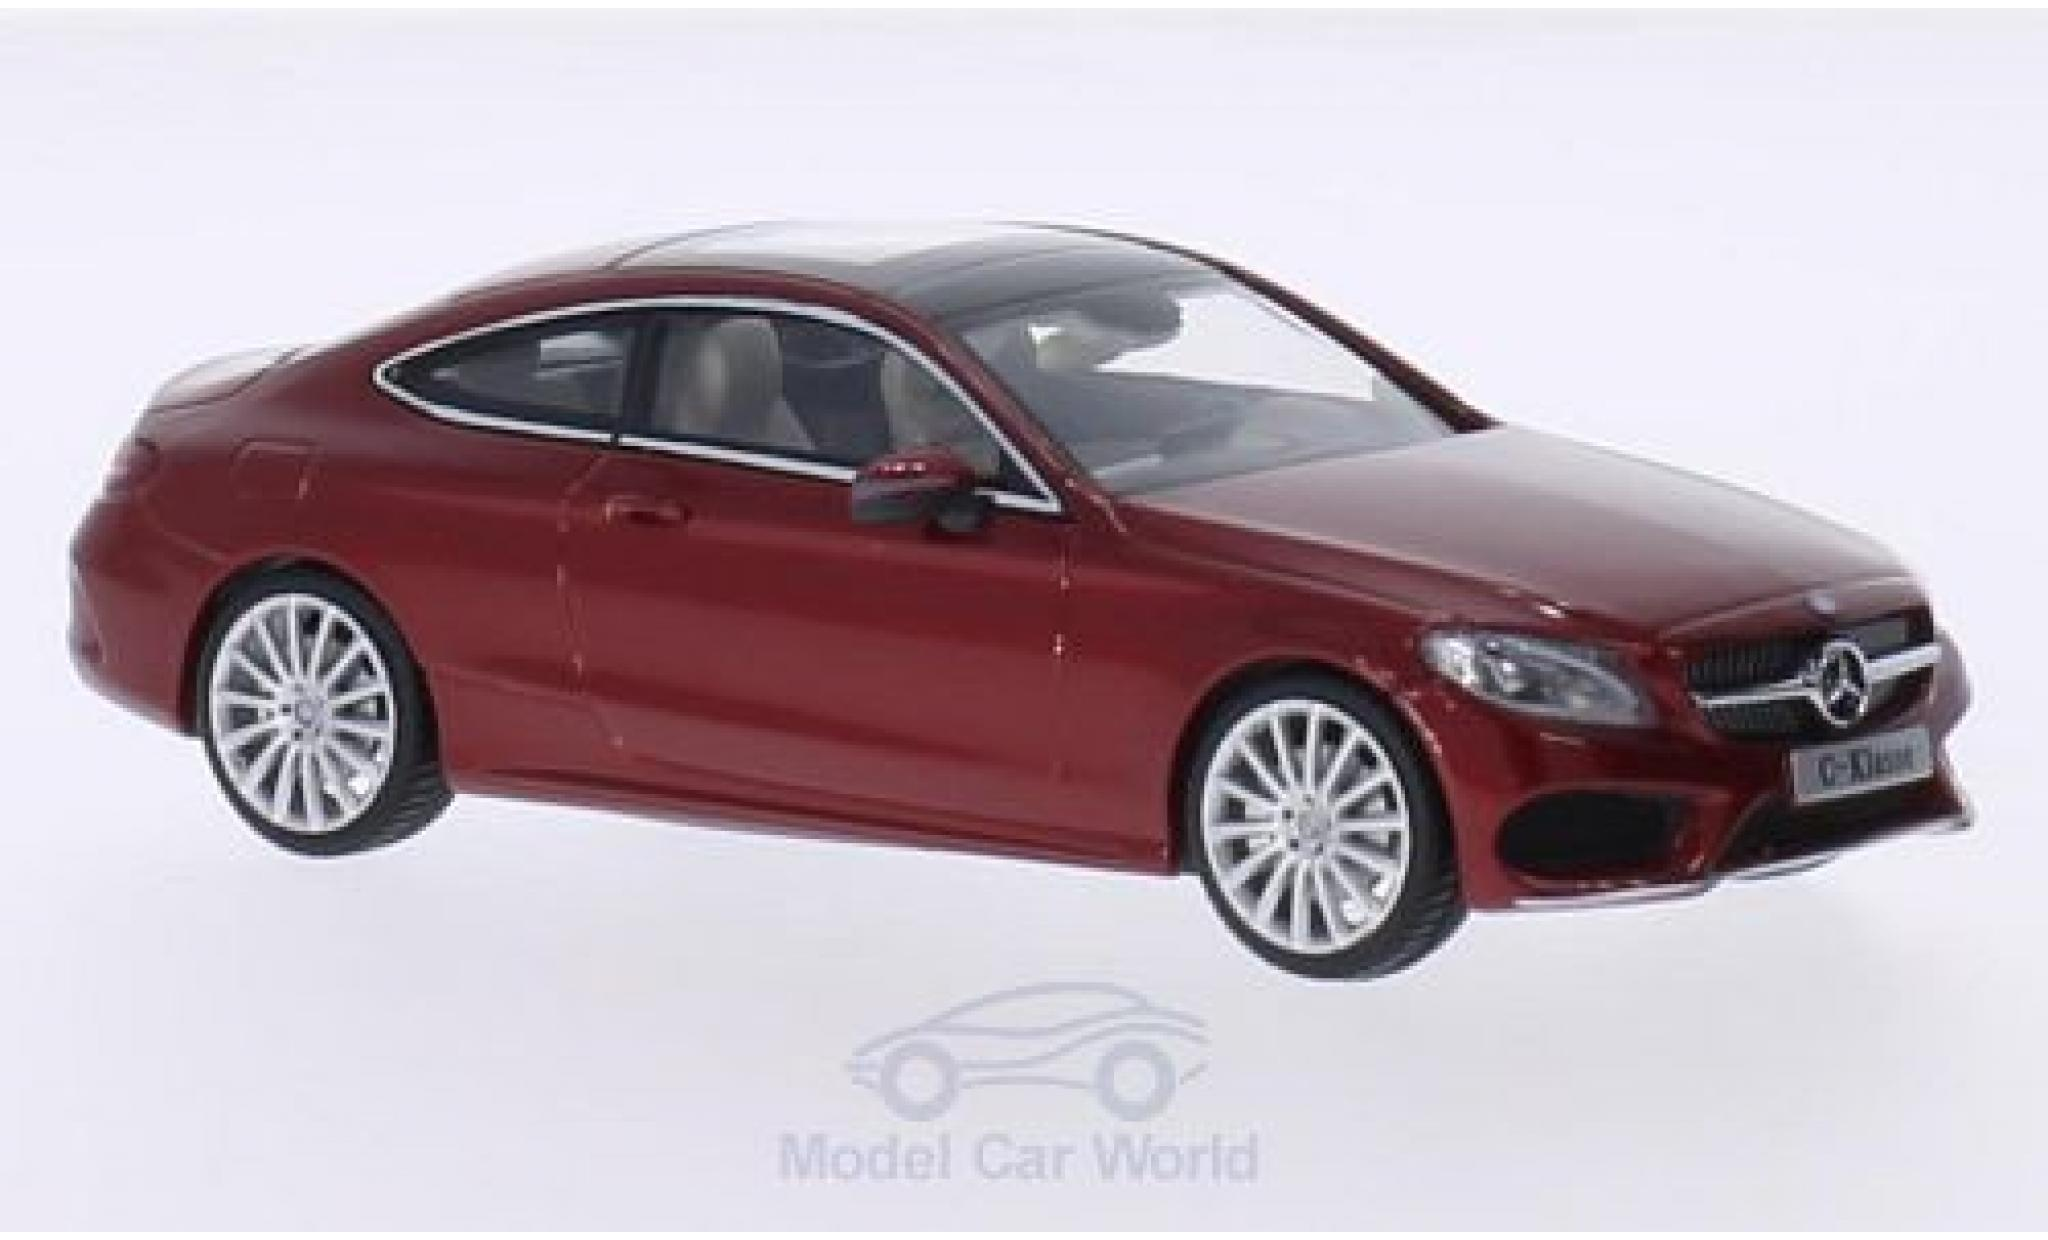 Mercedes Classe C 1/43 iScale Coupe metallise rouge